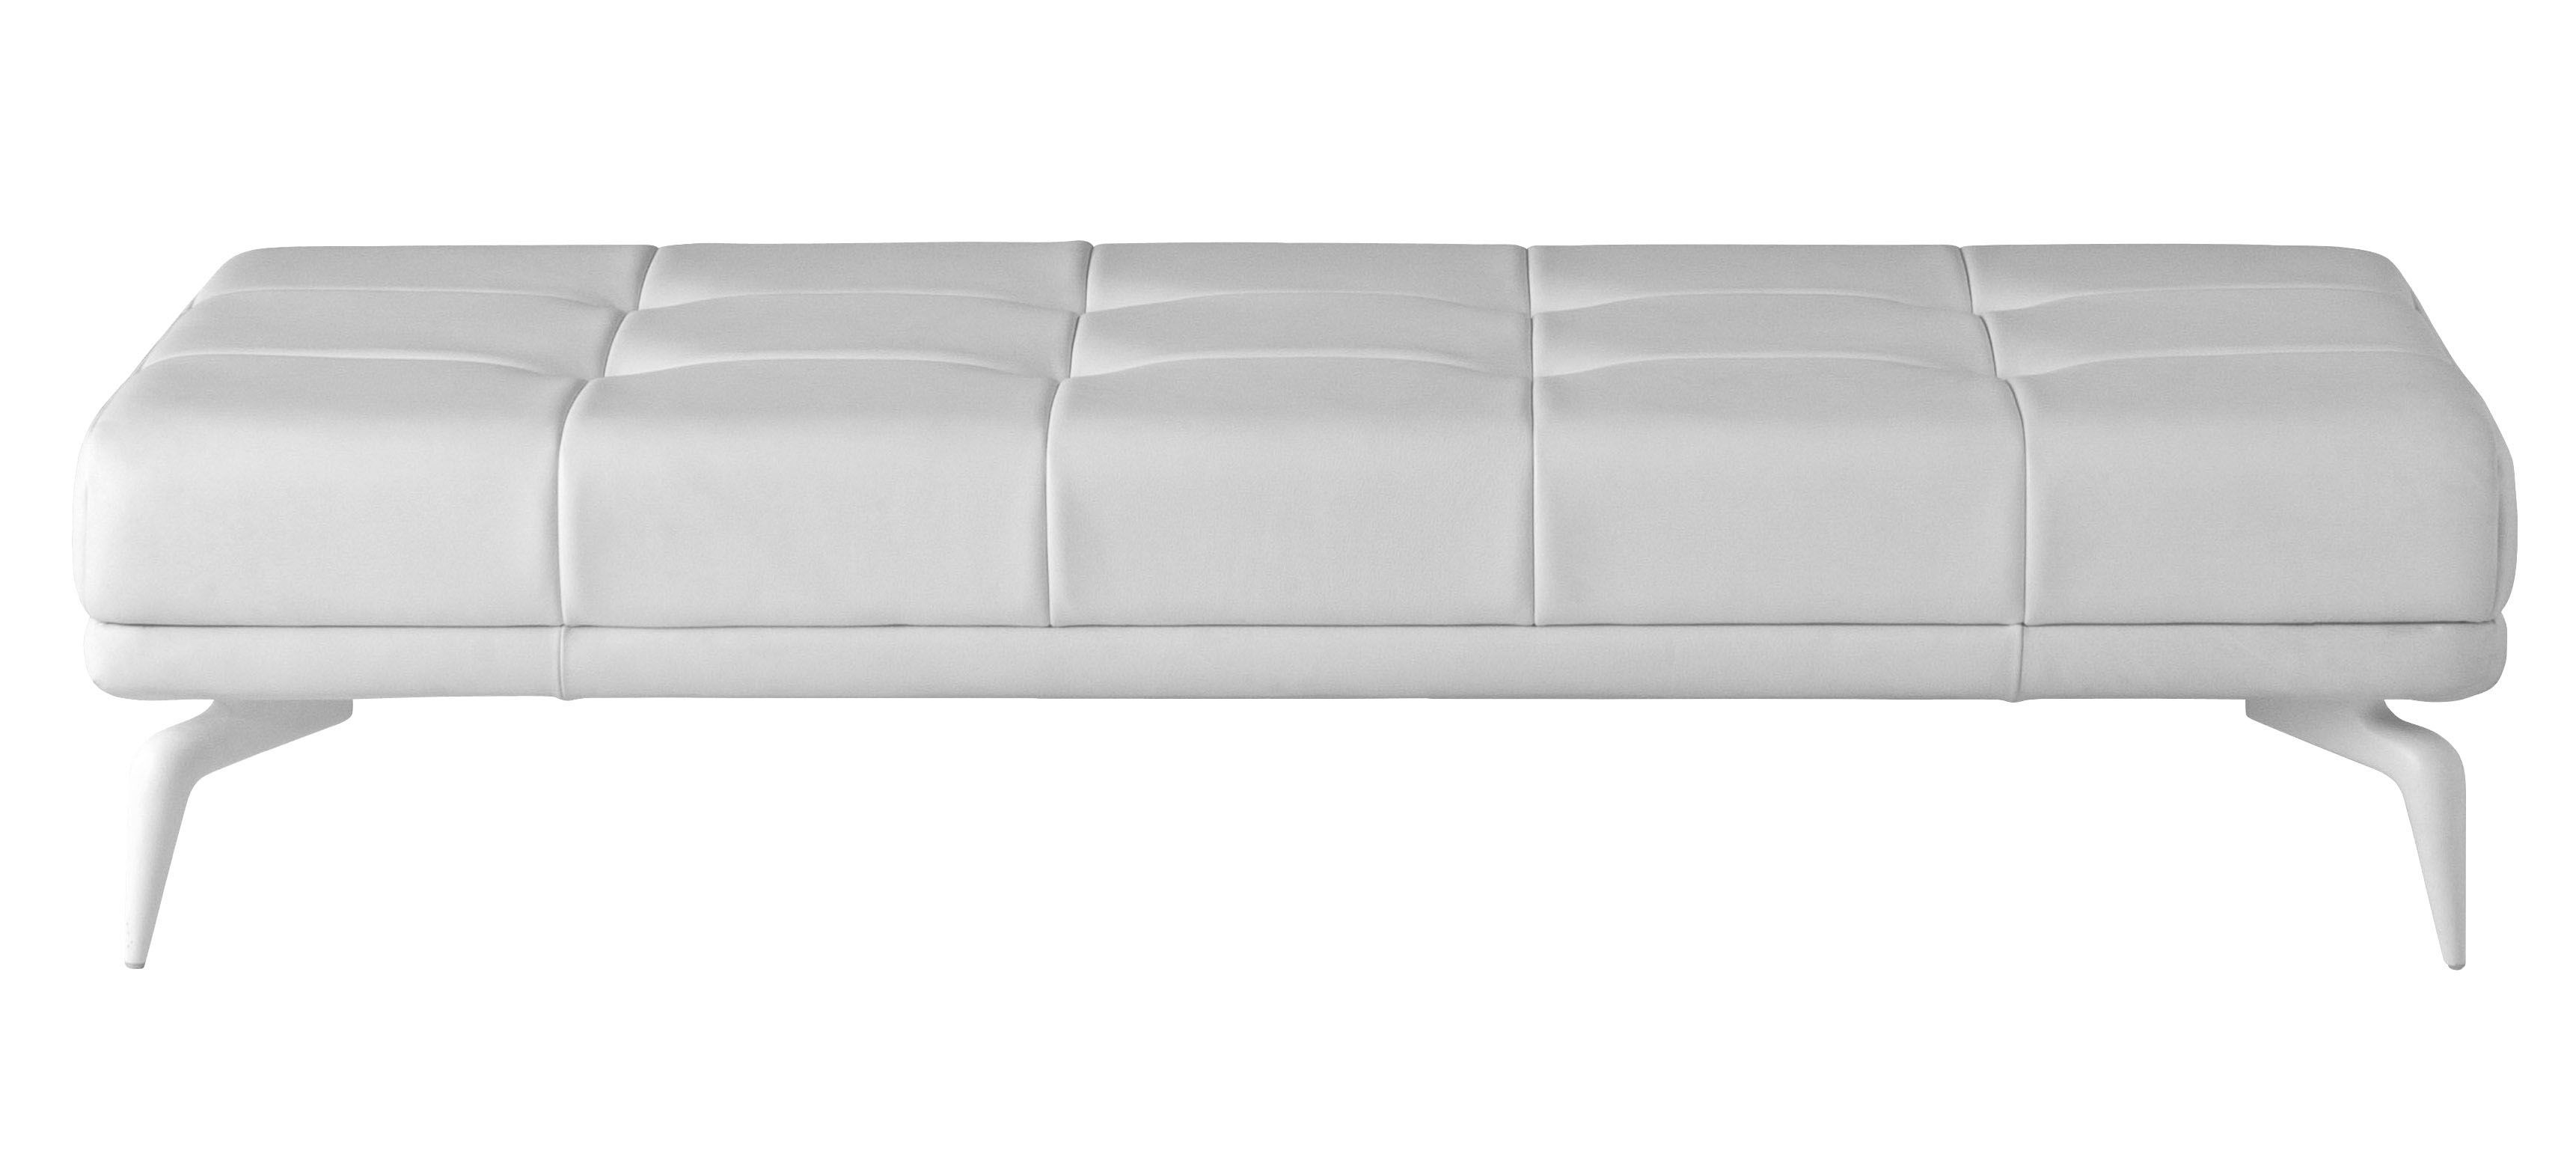 Furniture - Poufs & Floor Cushions - Leeon Bench - Bench by Driade - White leather - Lacquered aluminium, Leather